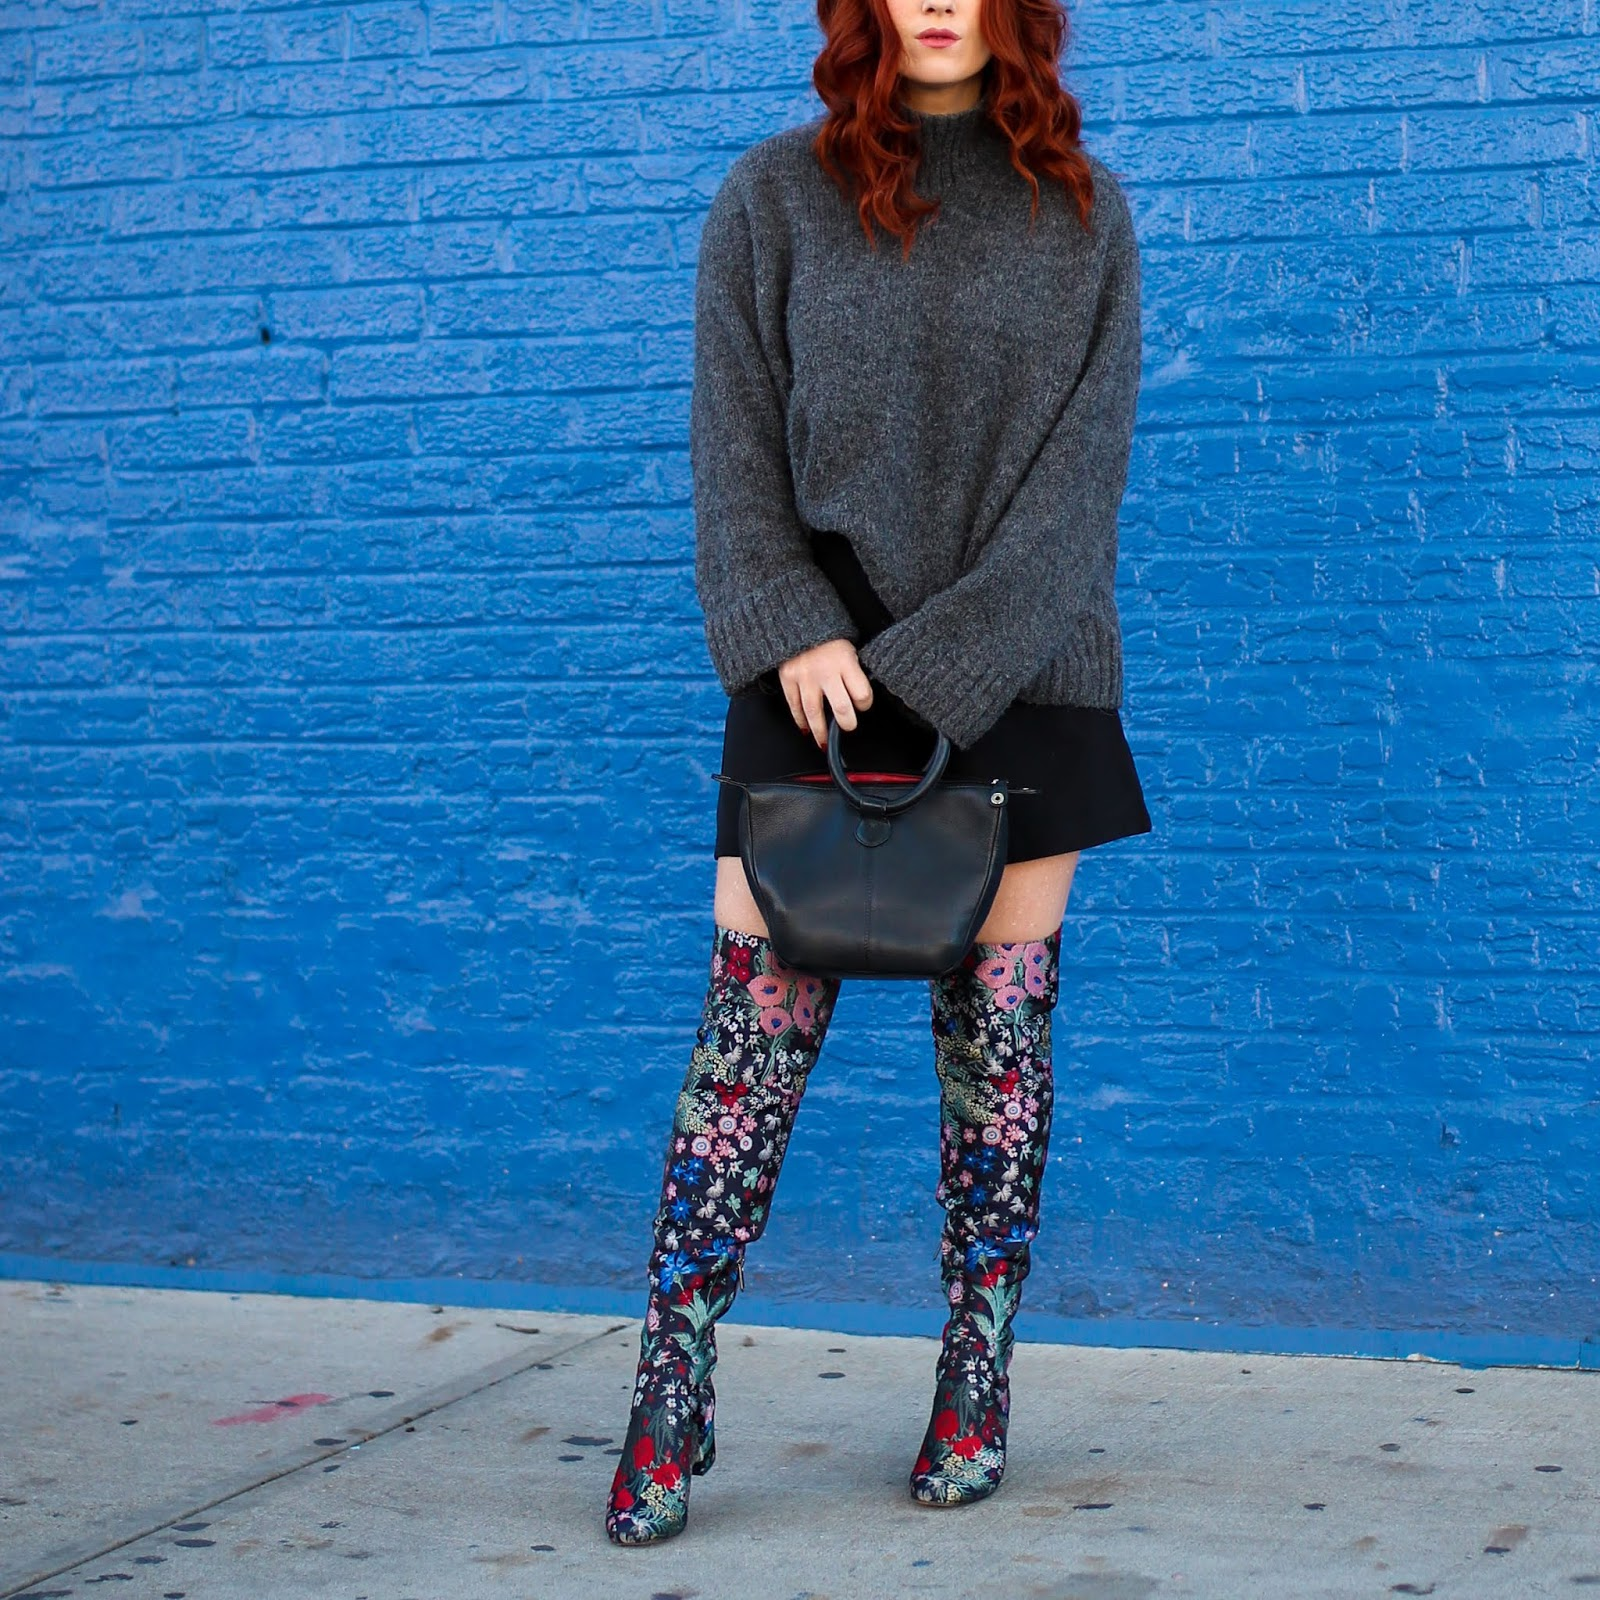 81a40b7eaf4 Statement Boots  Sam Edelman Embroidered Over-The-Knee Boots ...